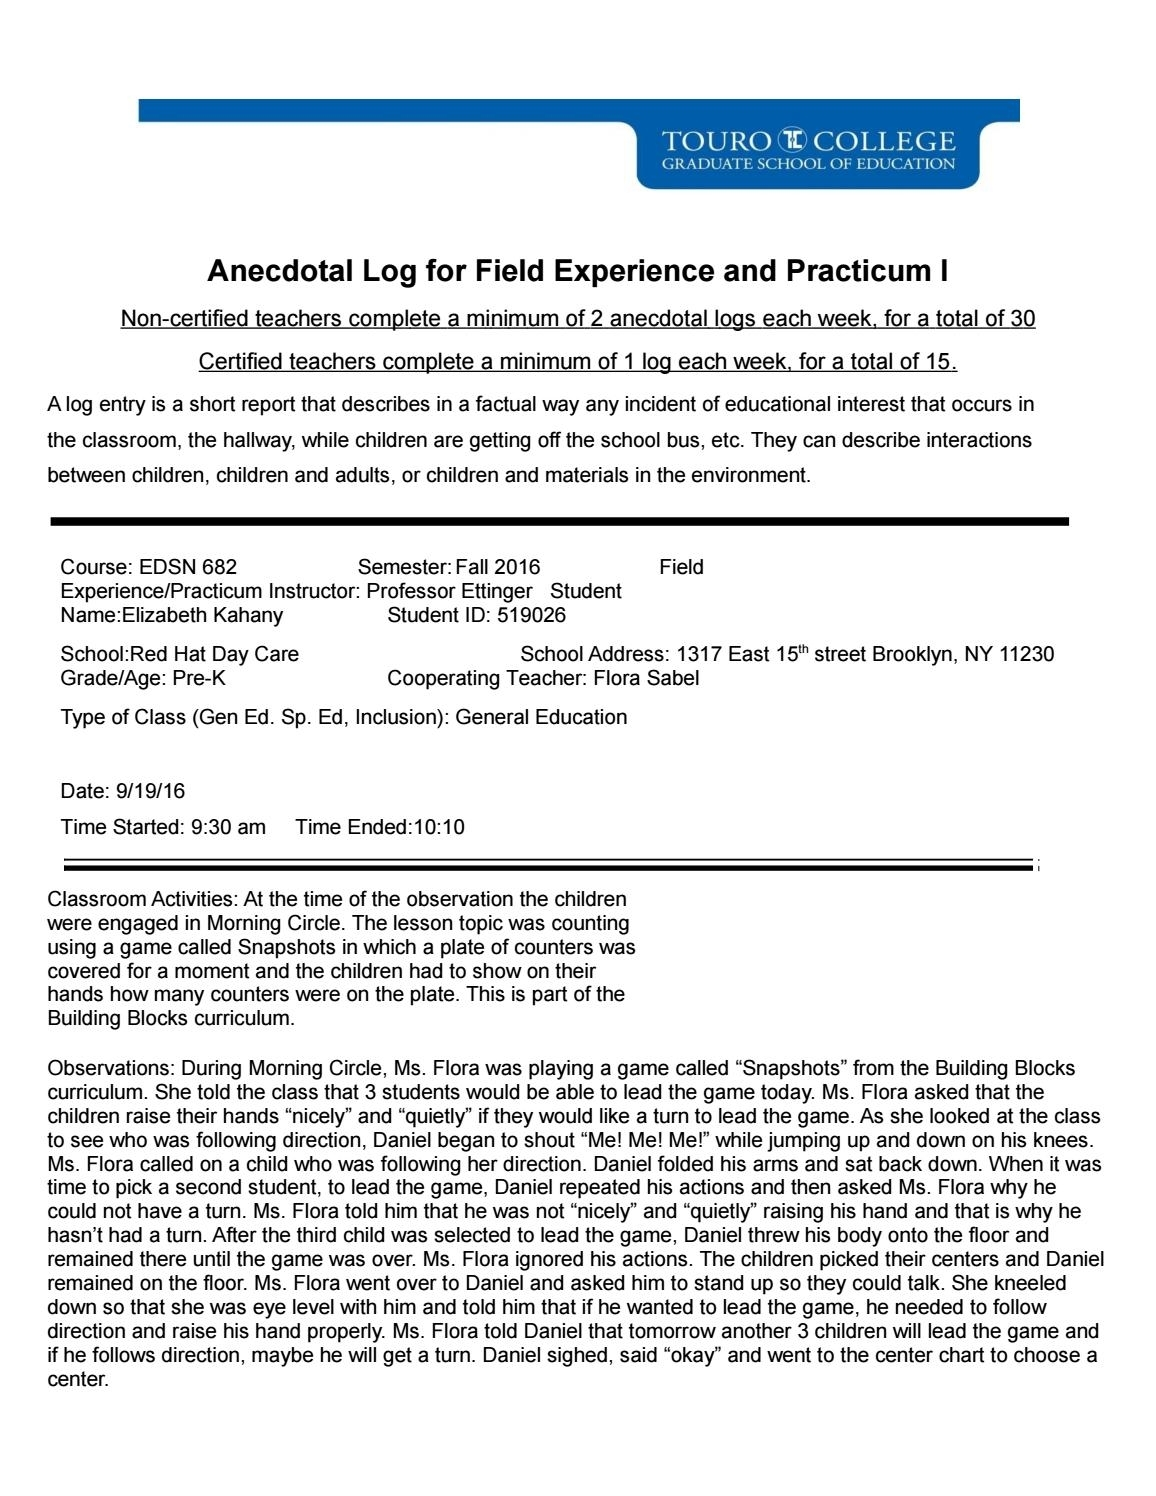 Anecdotal Log 2Elizabeth Kahany - Issuu with 30 Day Log Print Out